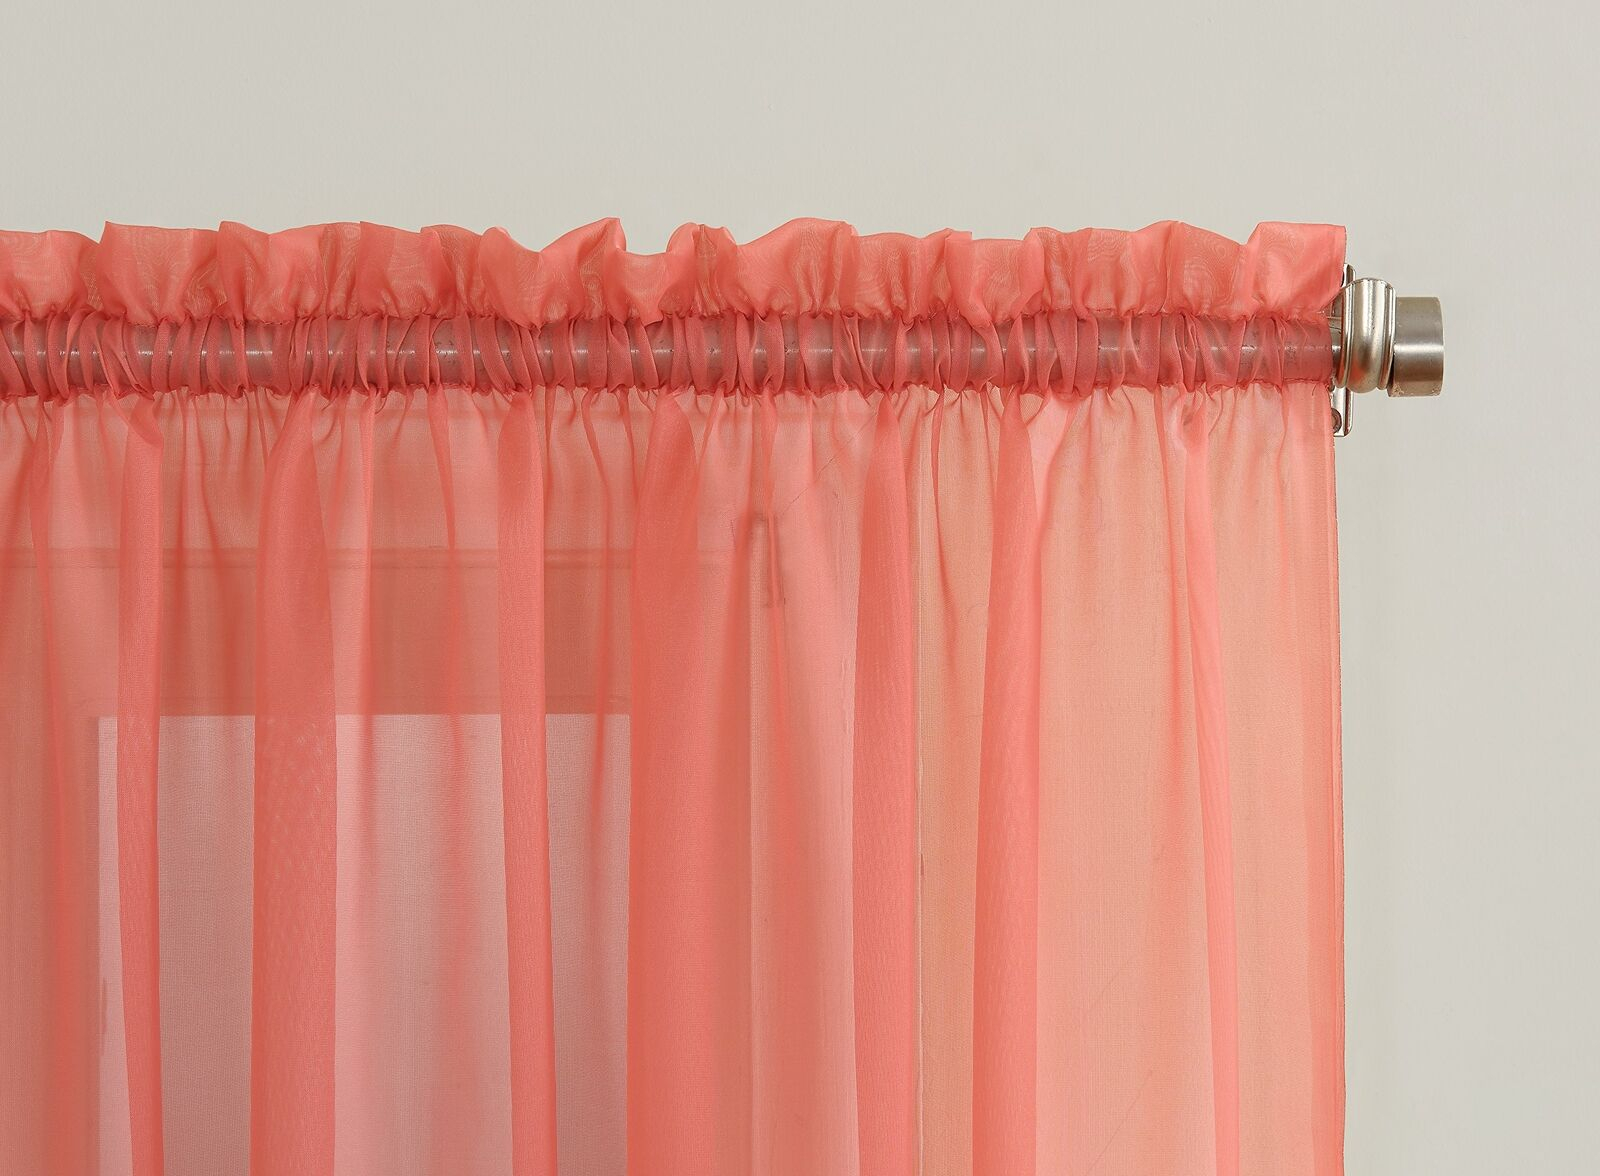 """Emily Sheer Voile Rod Pocket Curtain Panel, 59"""" X 84"""", Coral Orange Inside Emily Sheer Voile Single Curtain Panels (View 8 of 20)"""